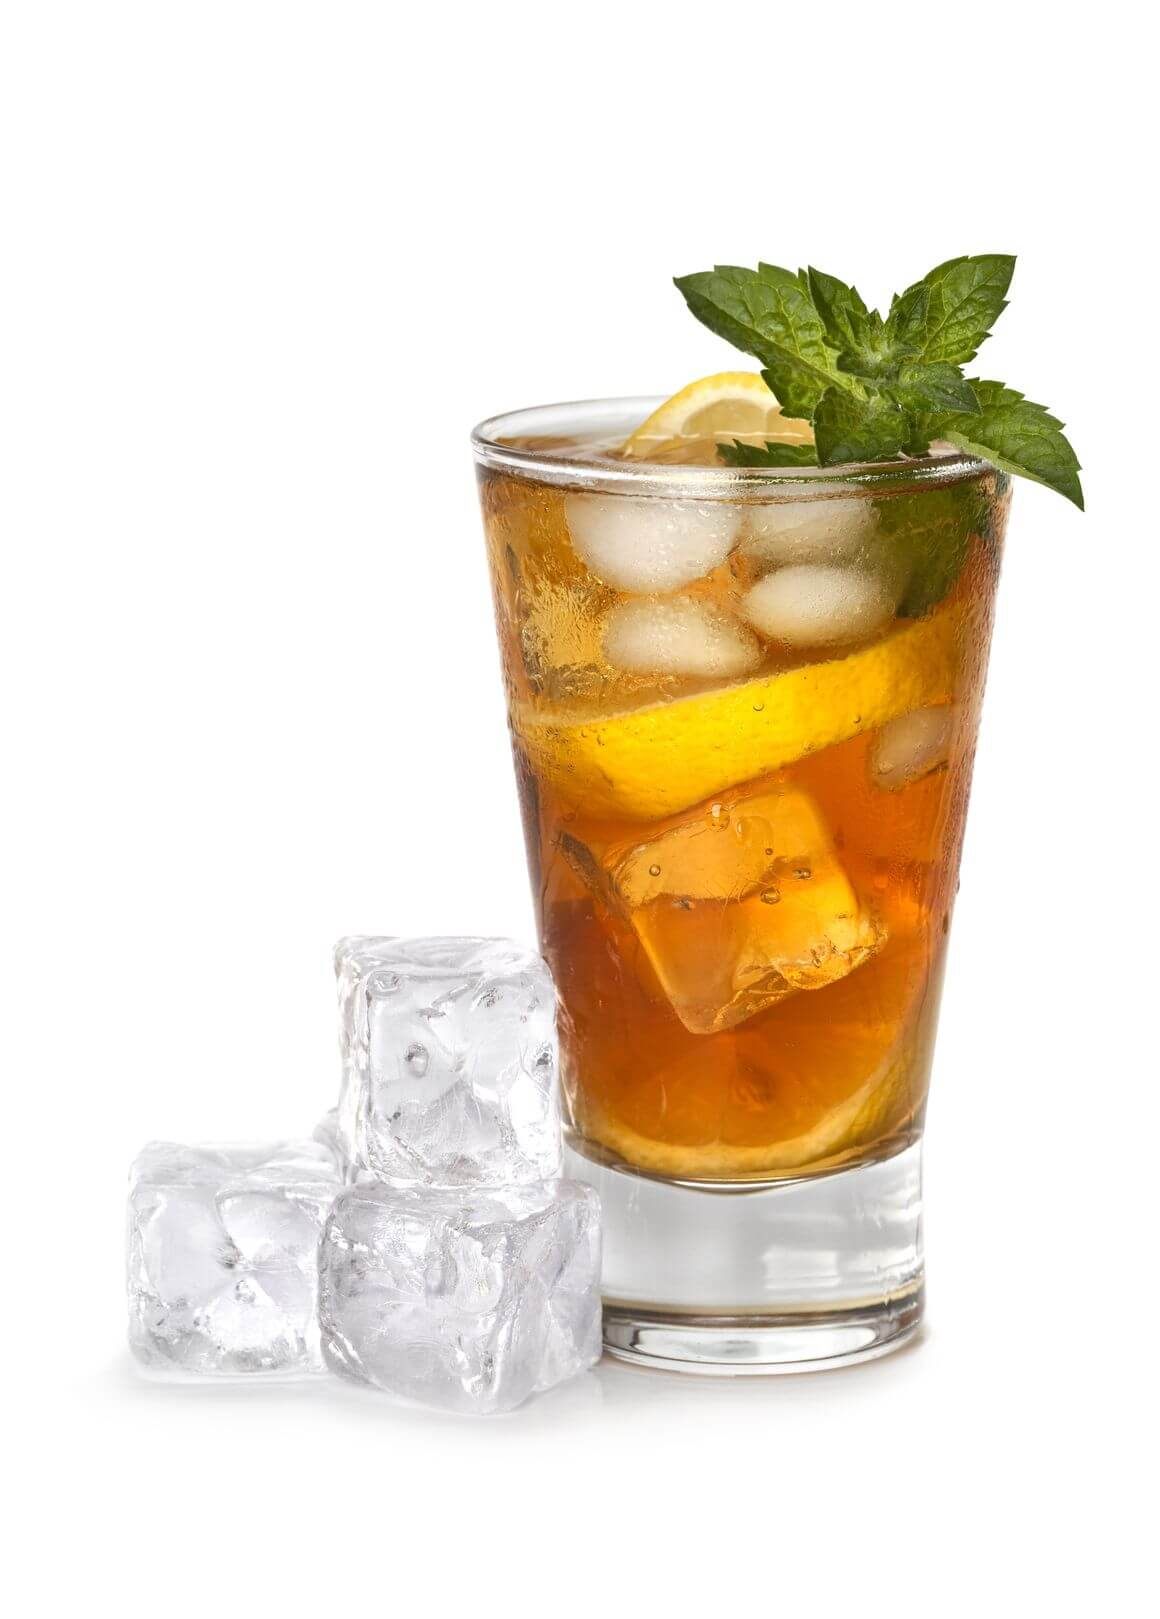 Bottled Iced Tea is another sugary drink making you fat and diabetic